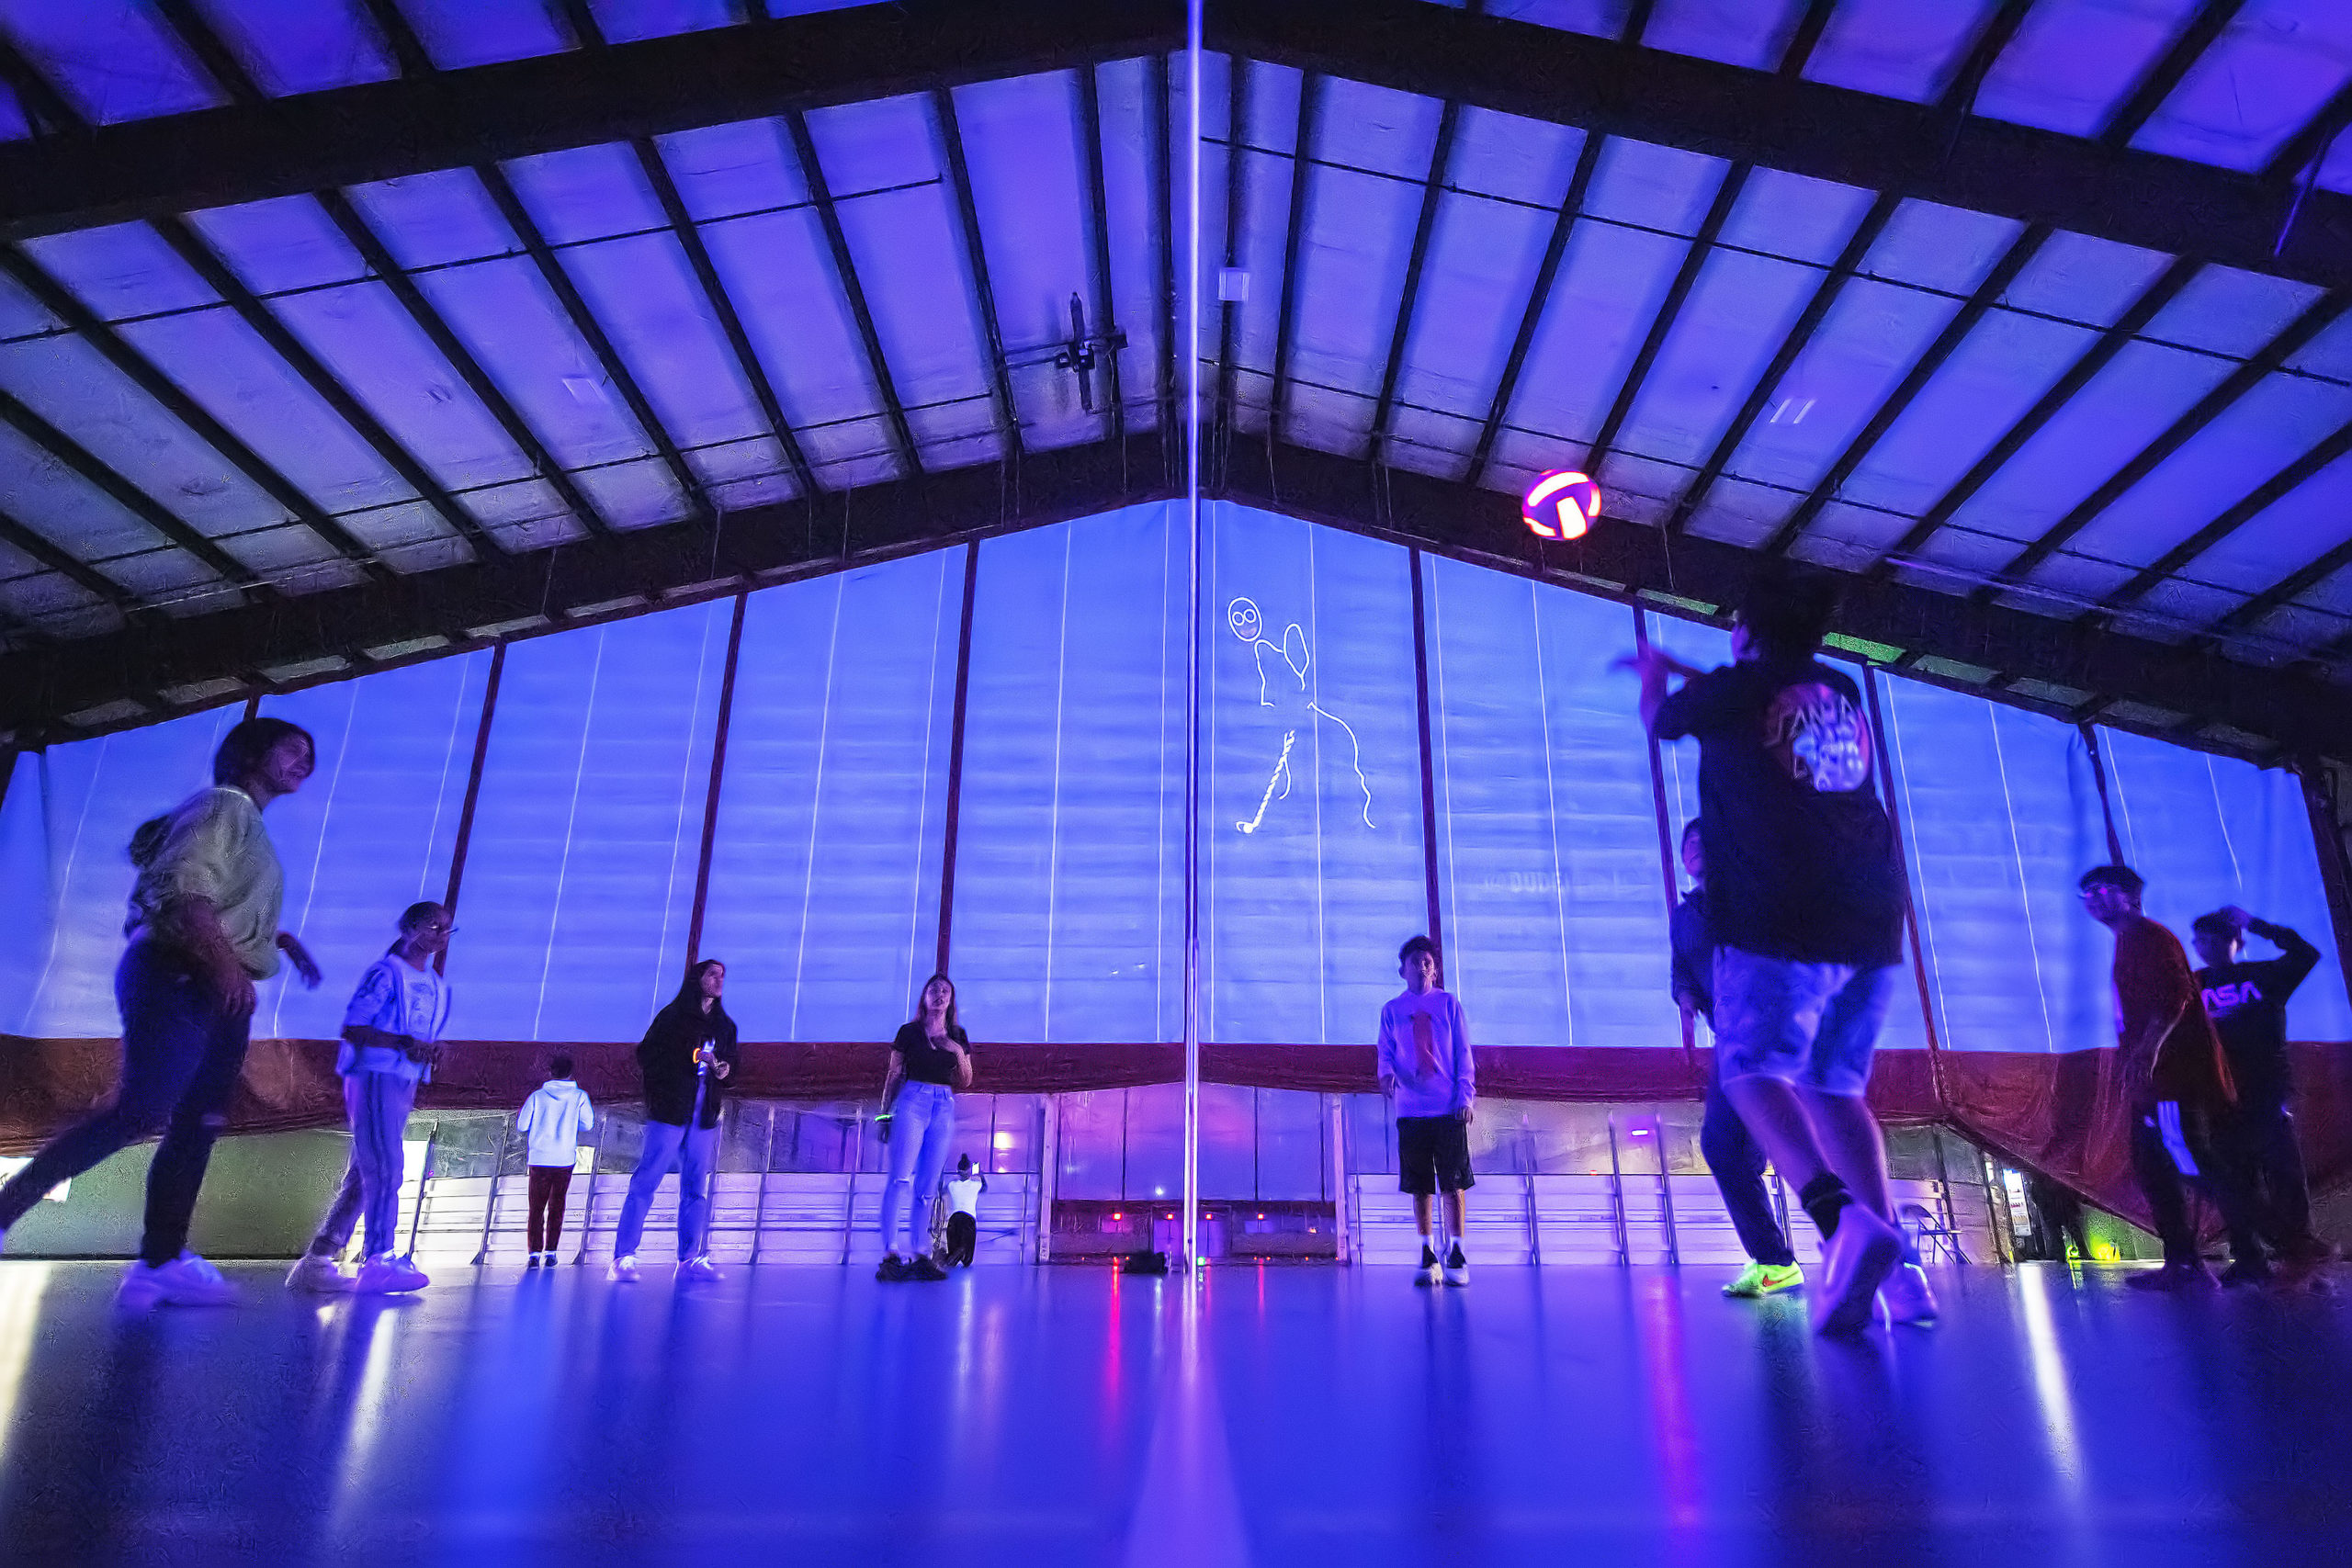 Kids play volleyball during the Lights Out! Glow Night event at the SYS facility in Southampton on Friday night. MICHAEL HELLER